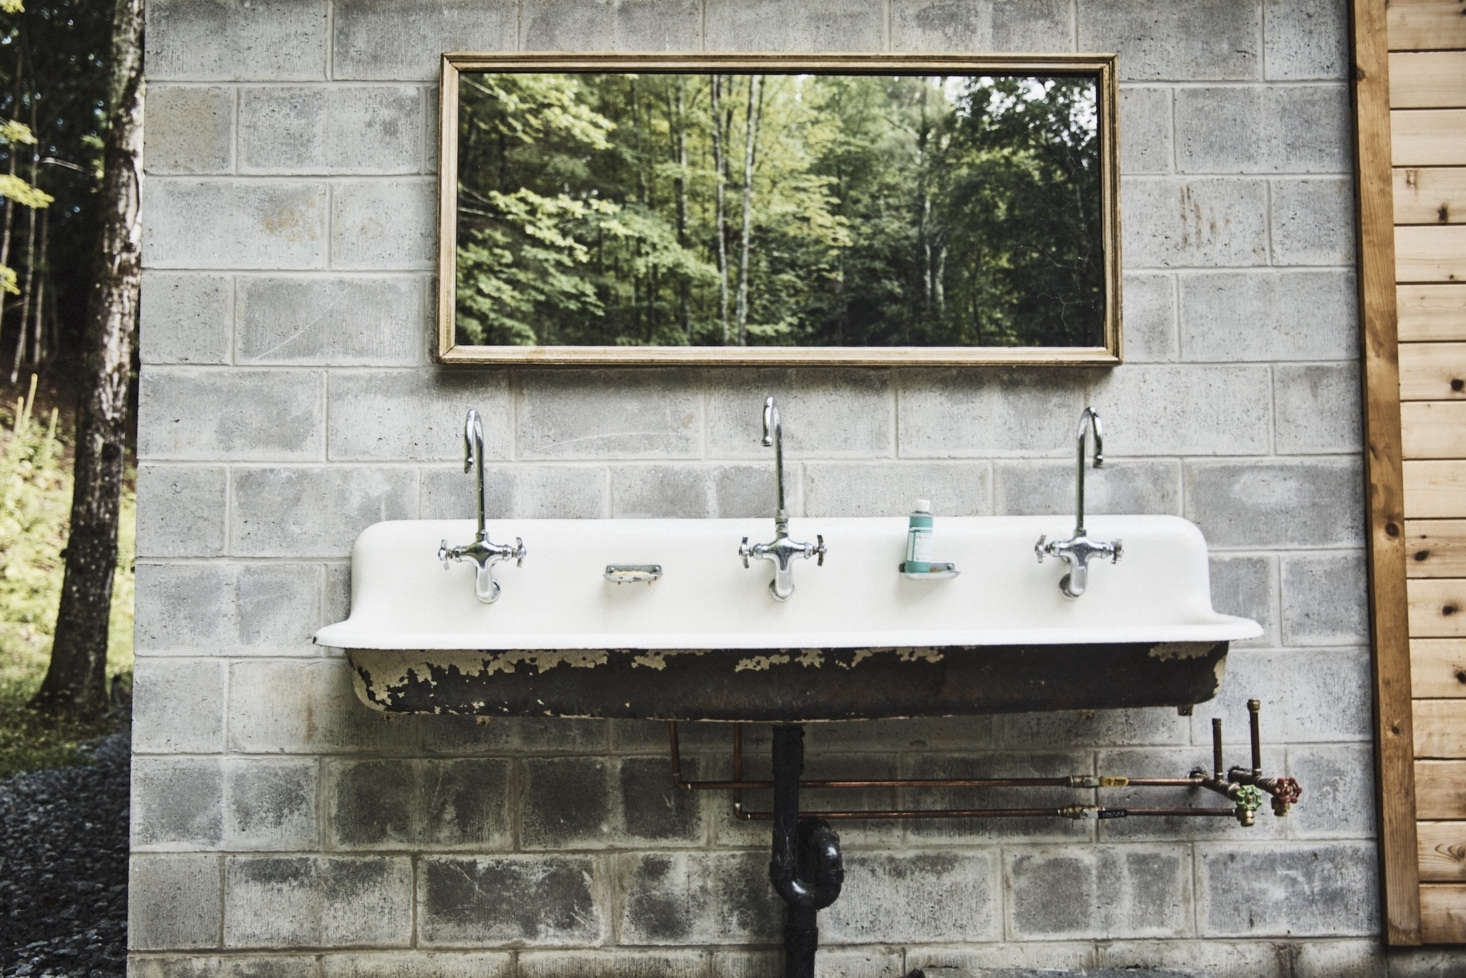 Another Aesthetic Movement touch: A vintage communal sink outside The Mess and a mirror positioned to capture the landscape.